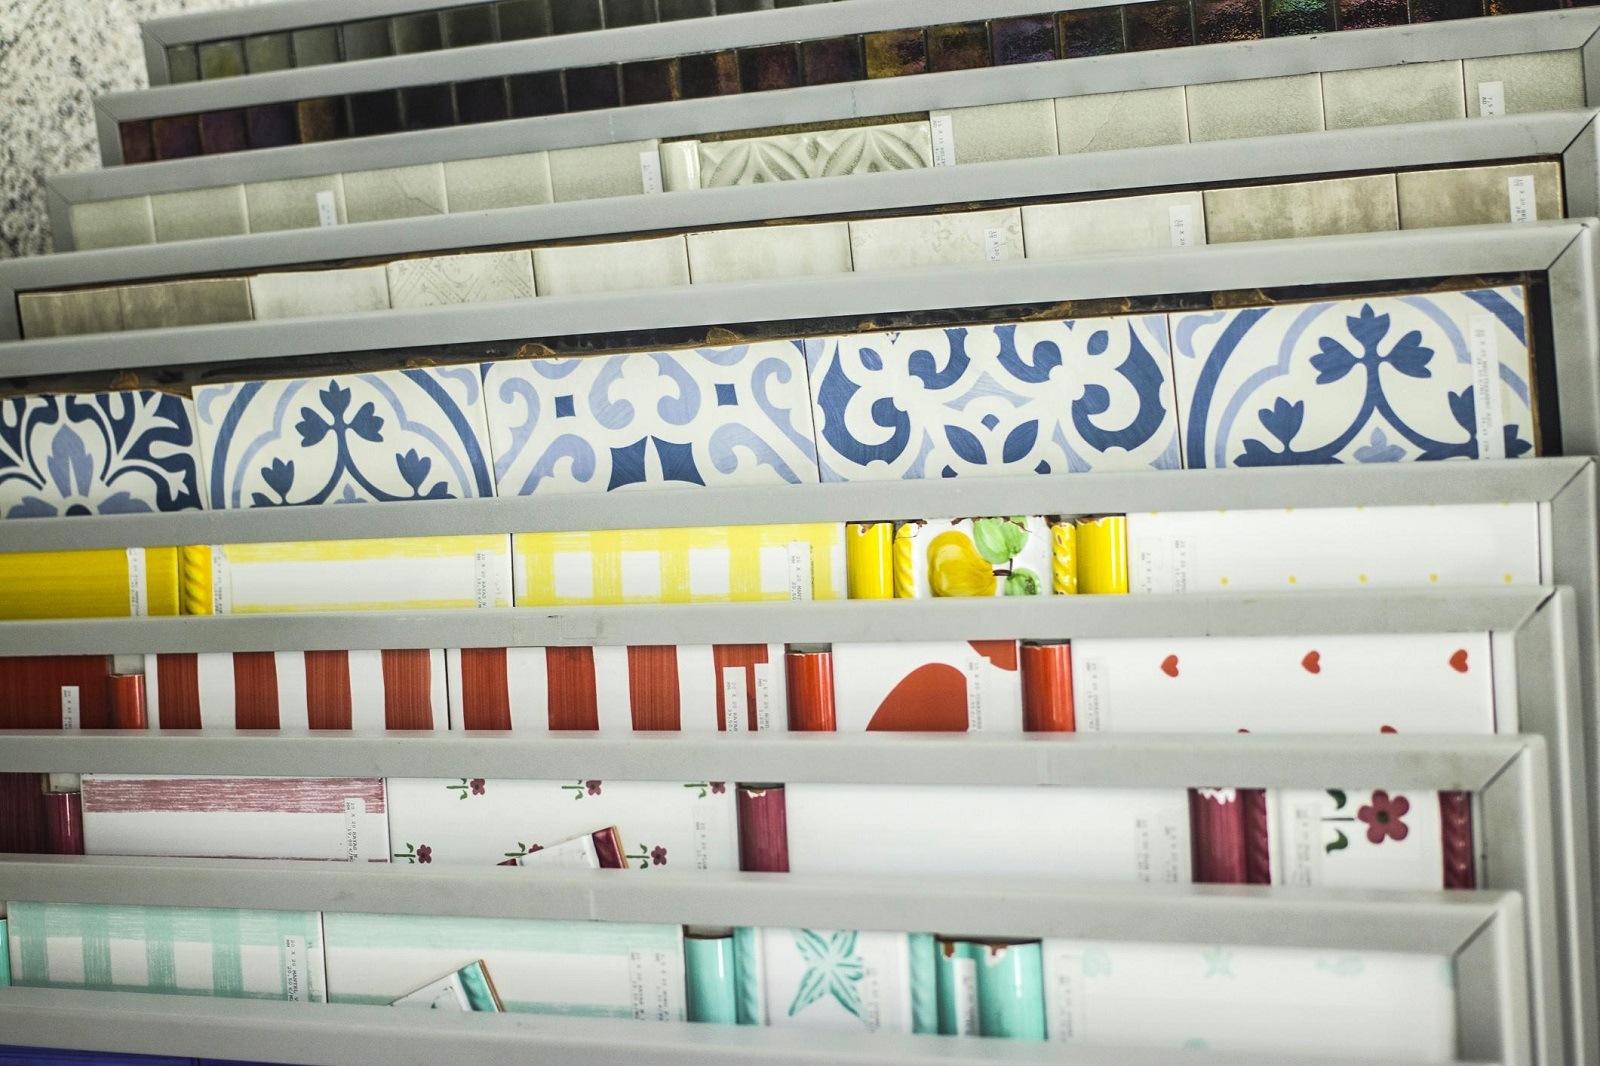 How it's Made: The Journey of the Tile. The process of manufacturing and the assortment of tile